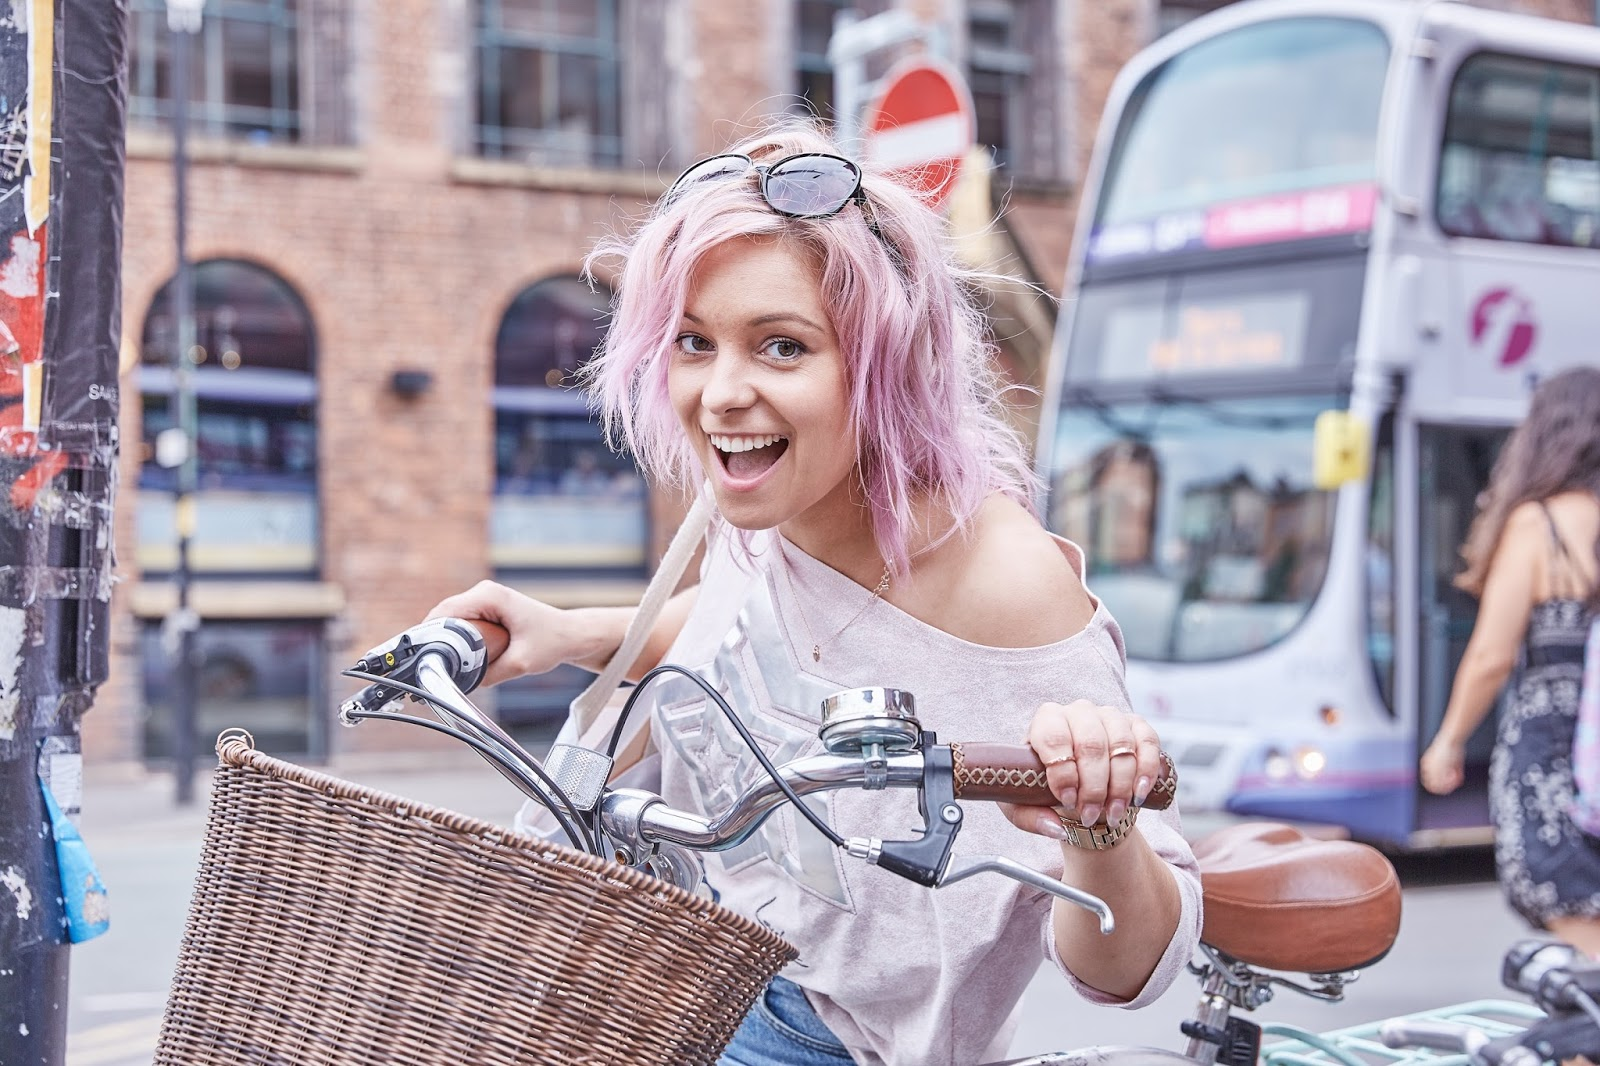 manchester girl with pink hair